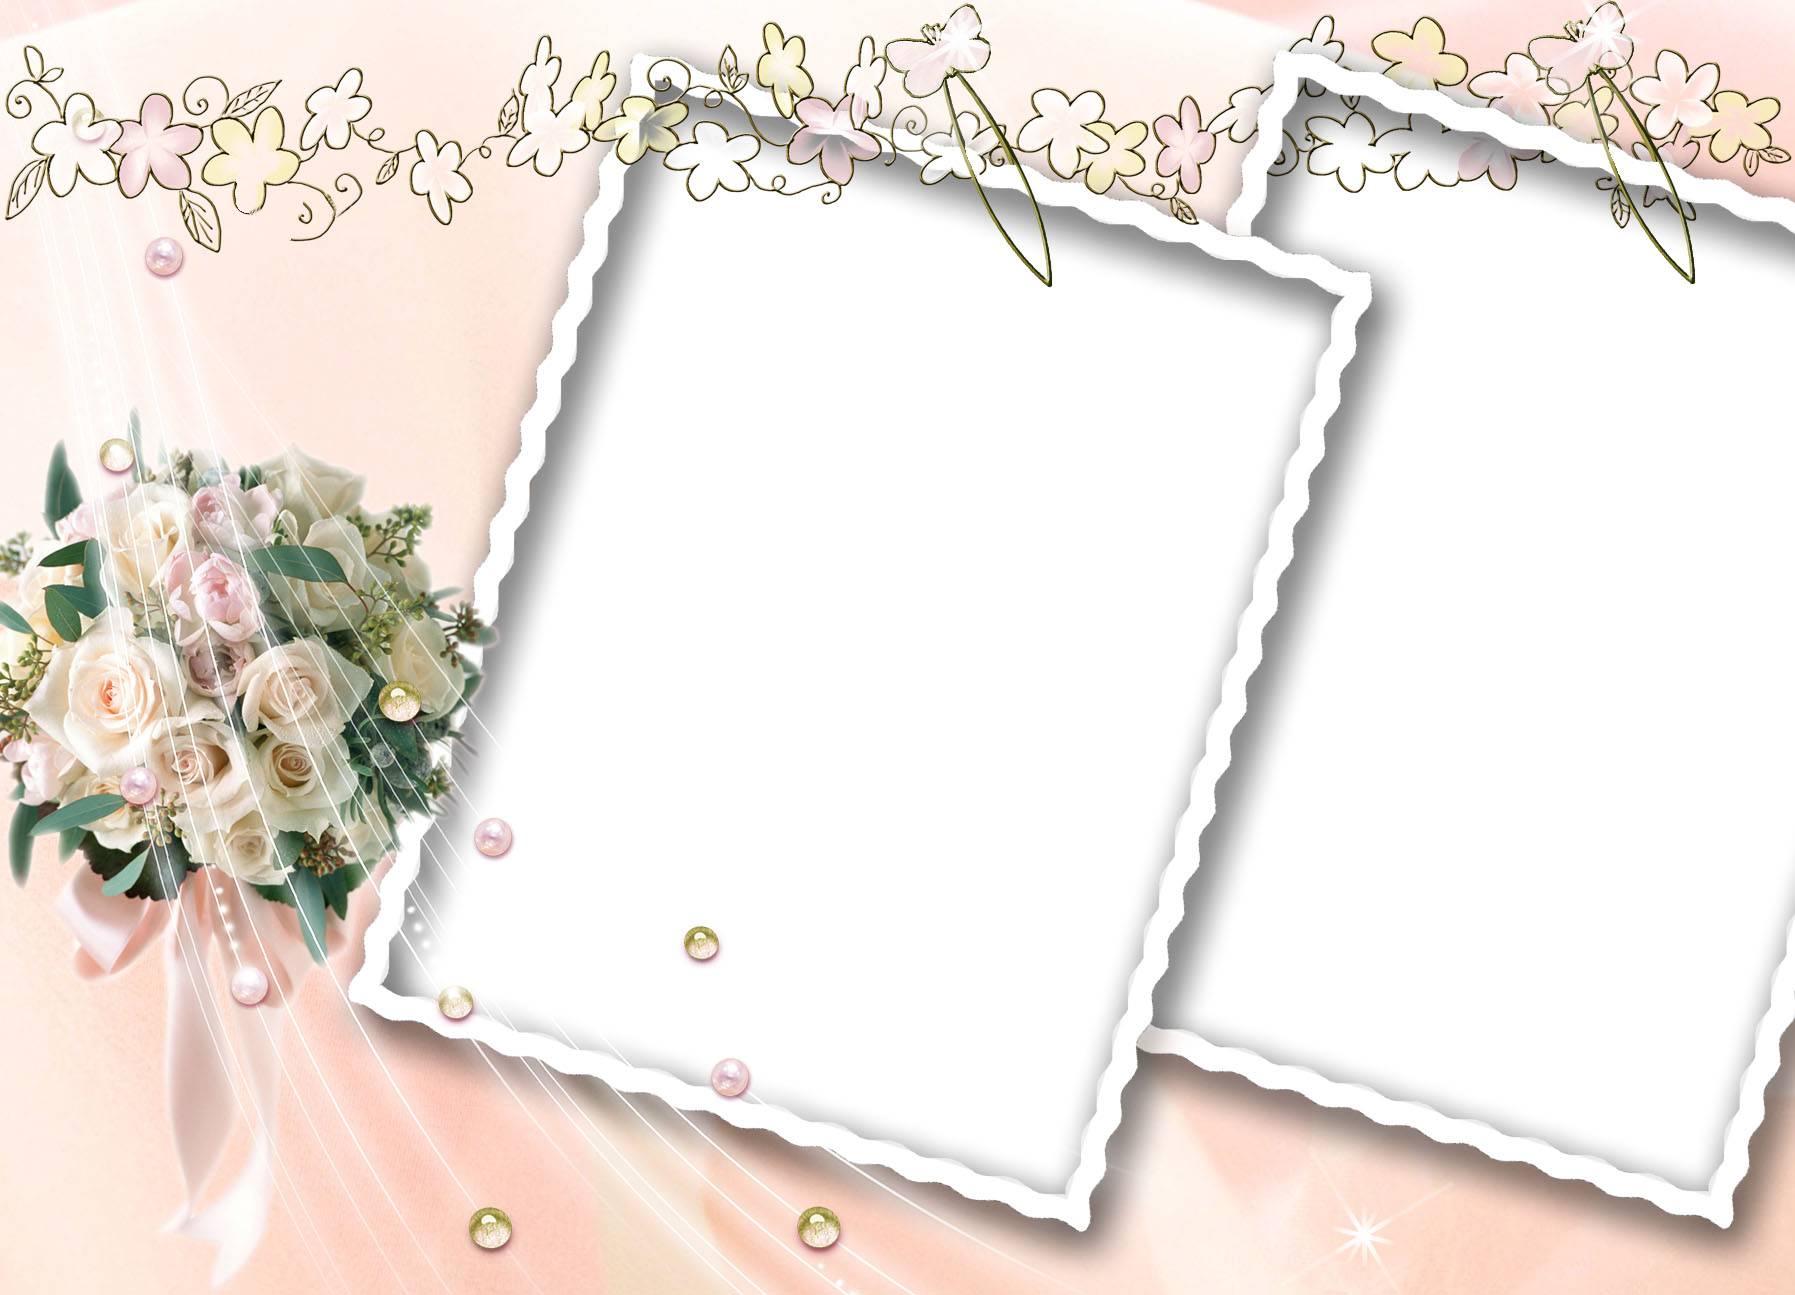 14 wedding frames psd for photoshop images wedding frame for Picture frame templates for photoshop